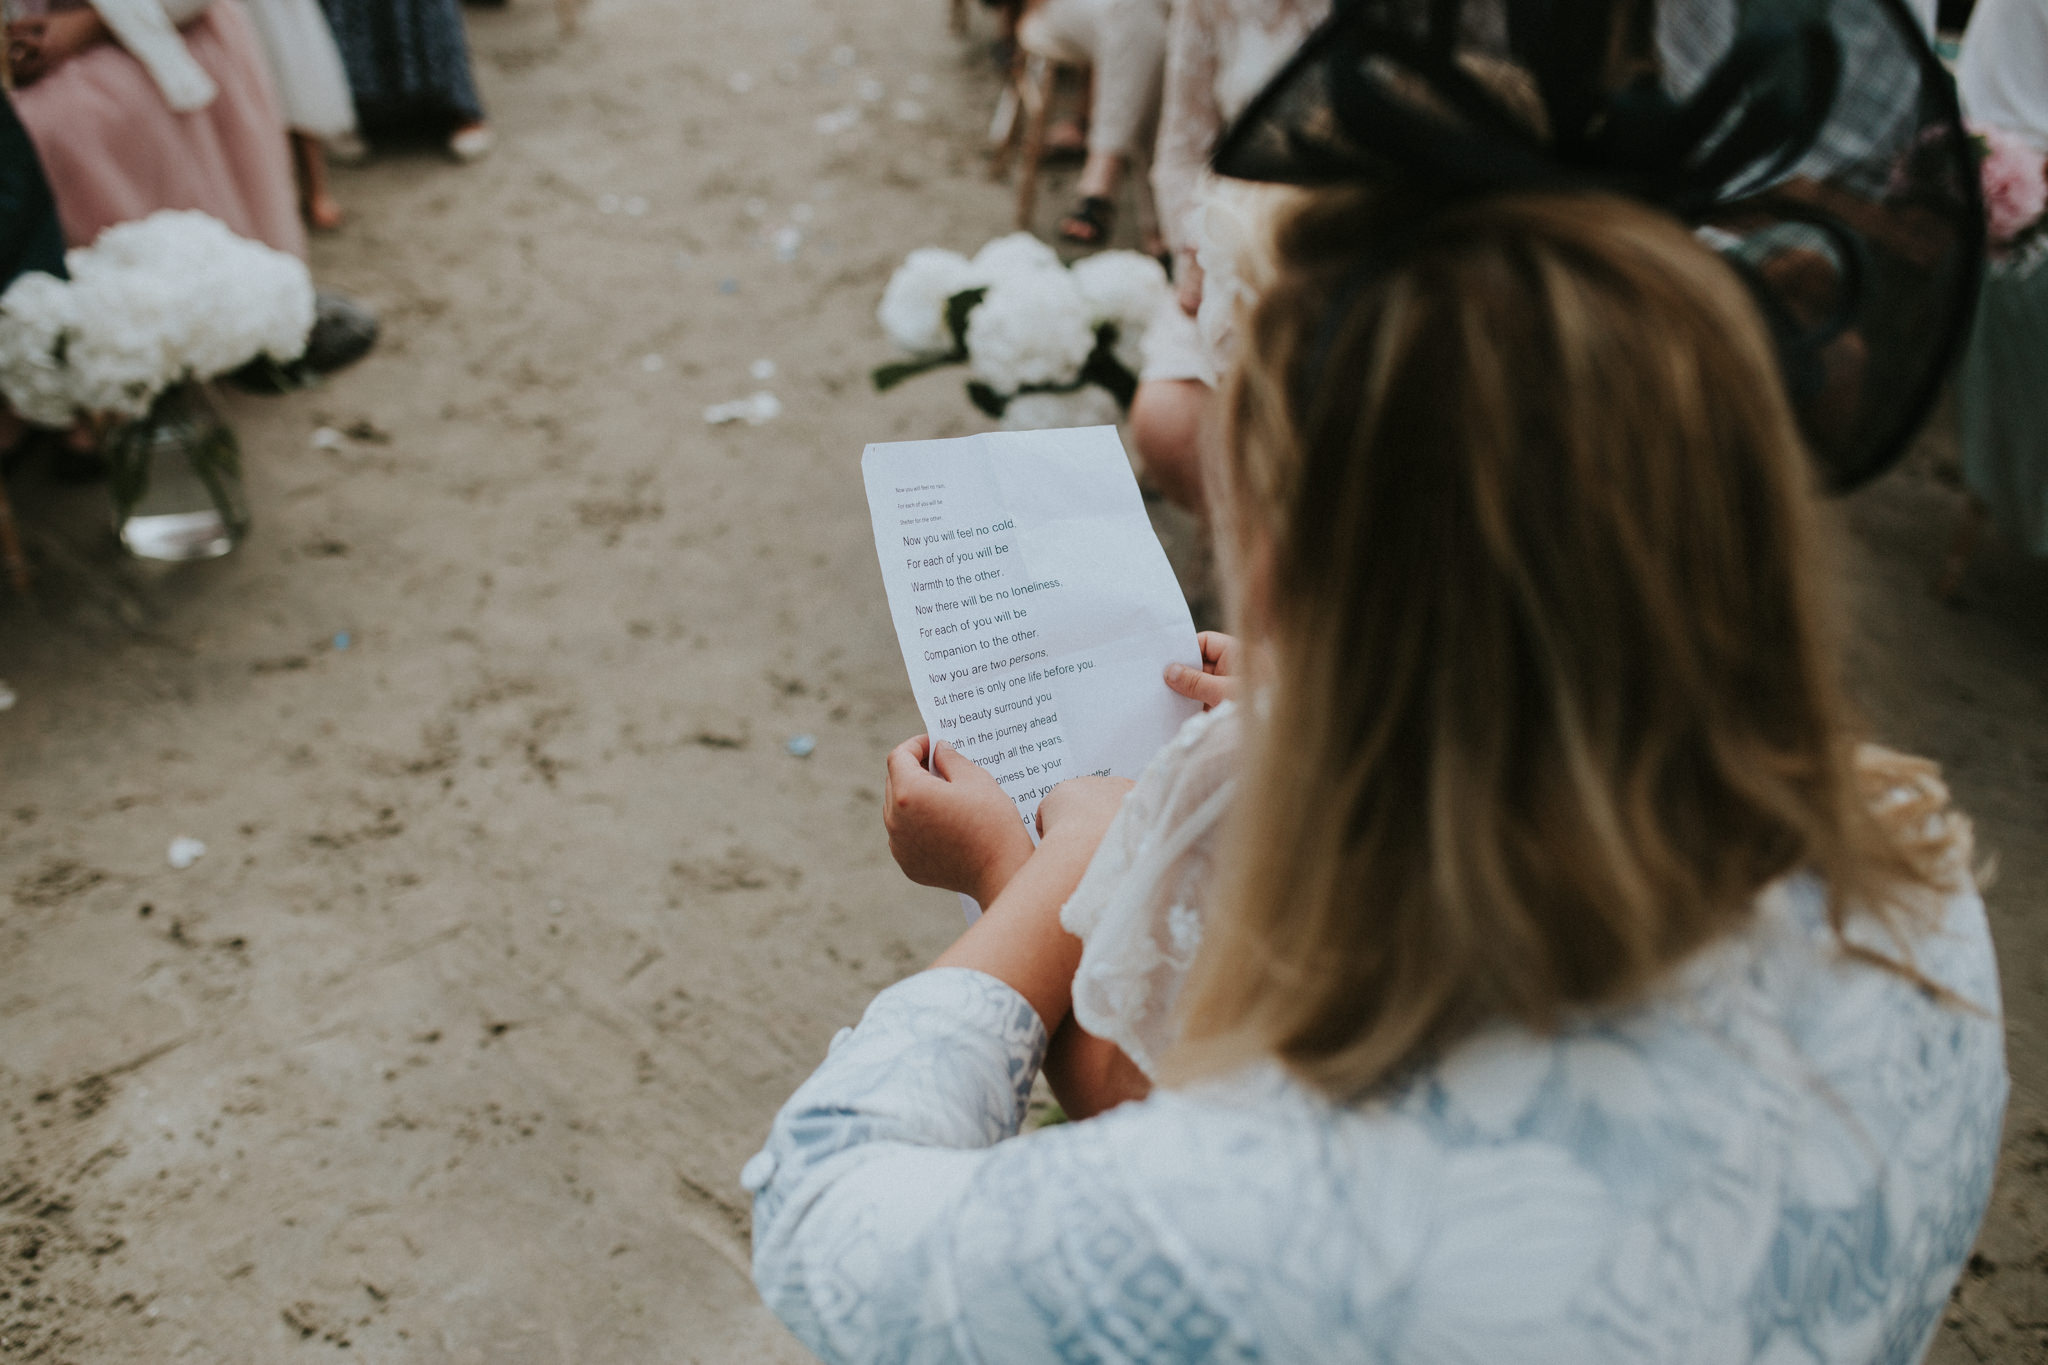 A wedding guest is holding a piece of paper.